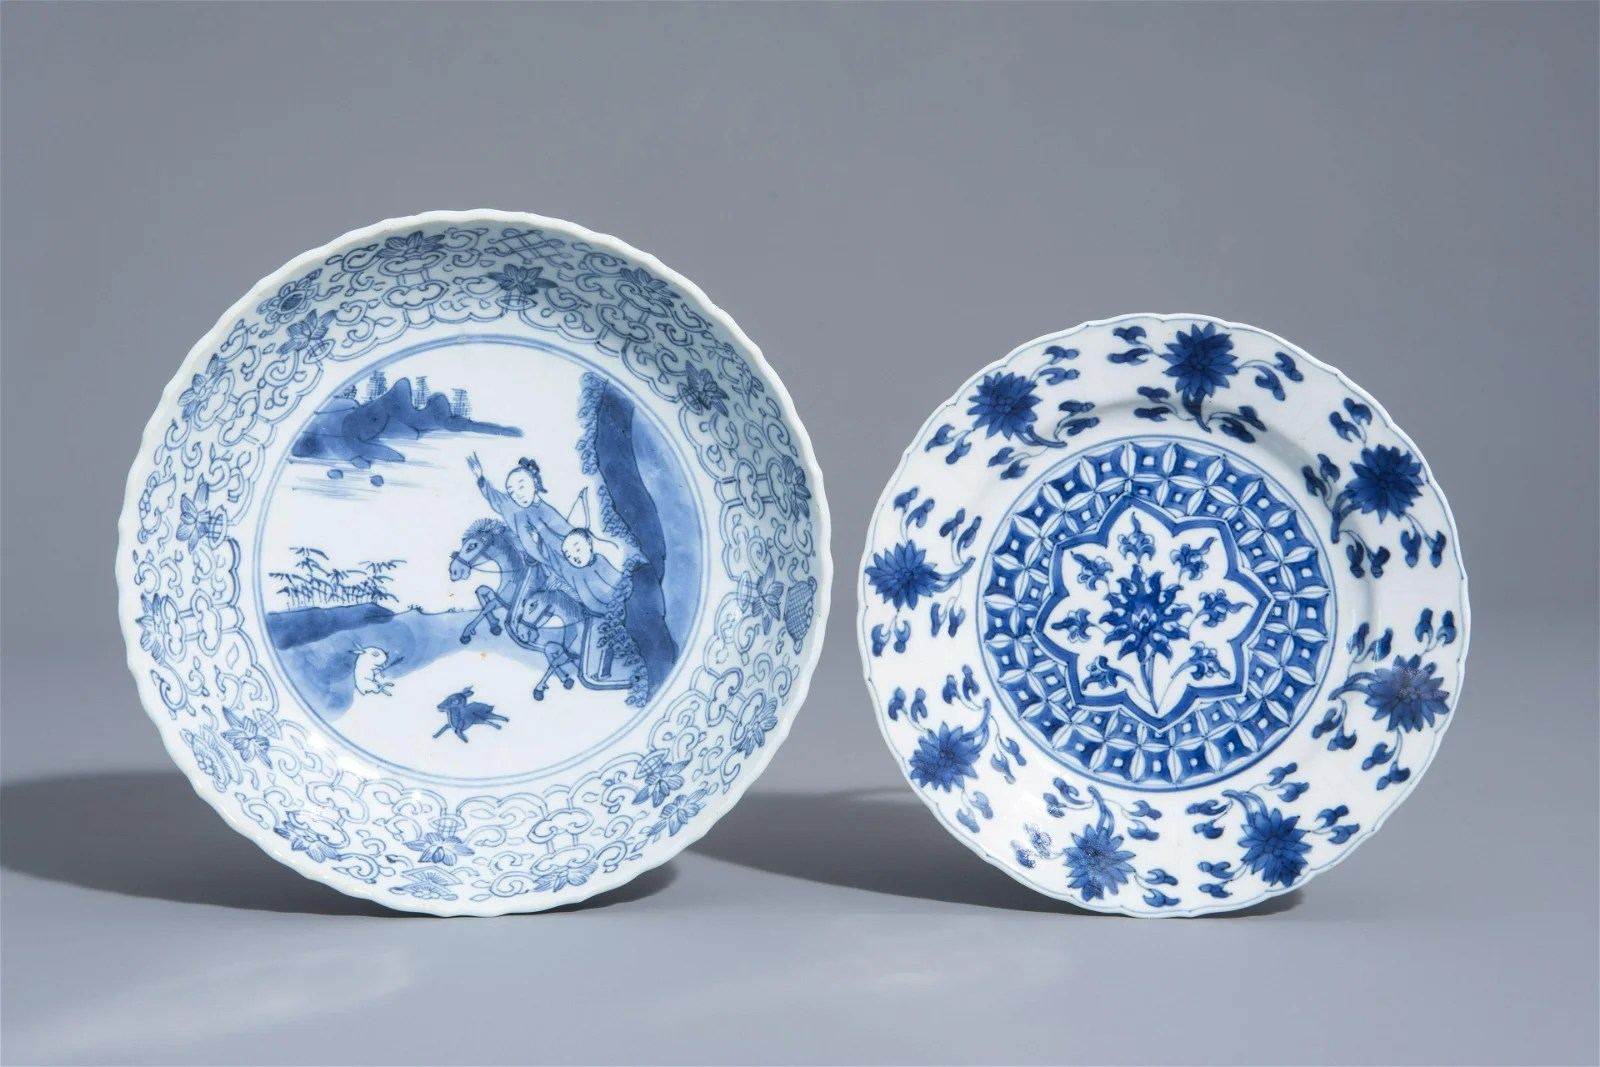 Two Chinese blue and white plates with a hunting scene